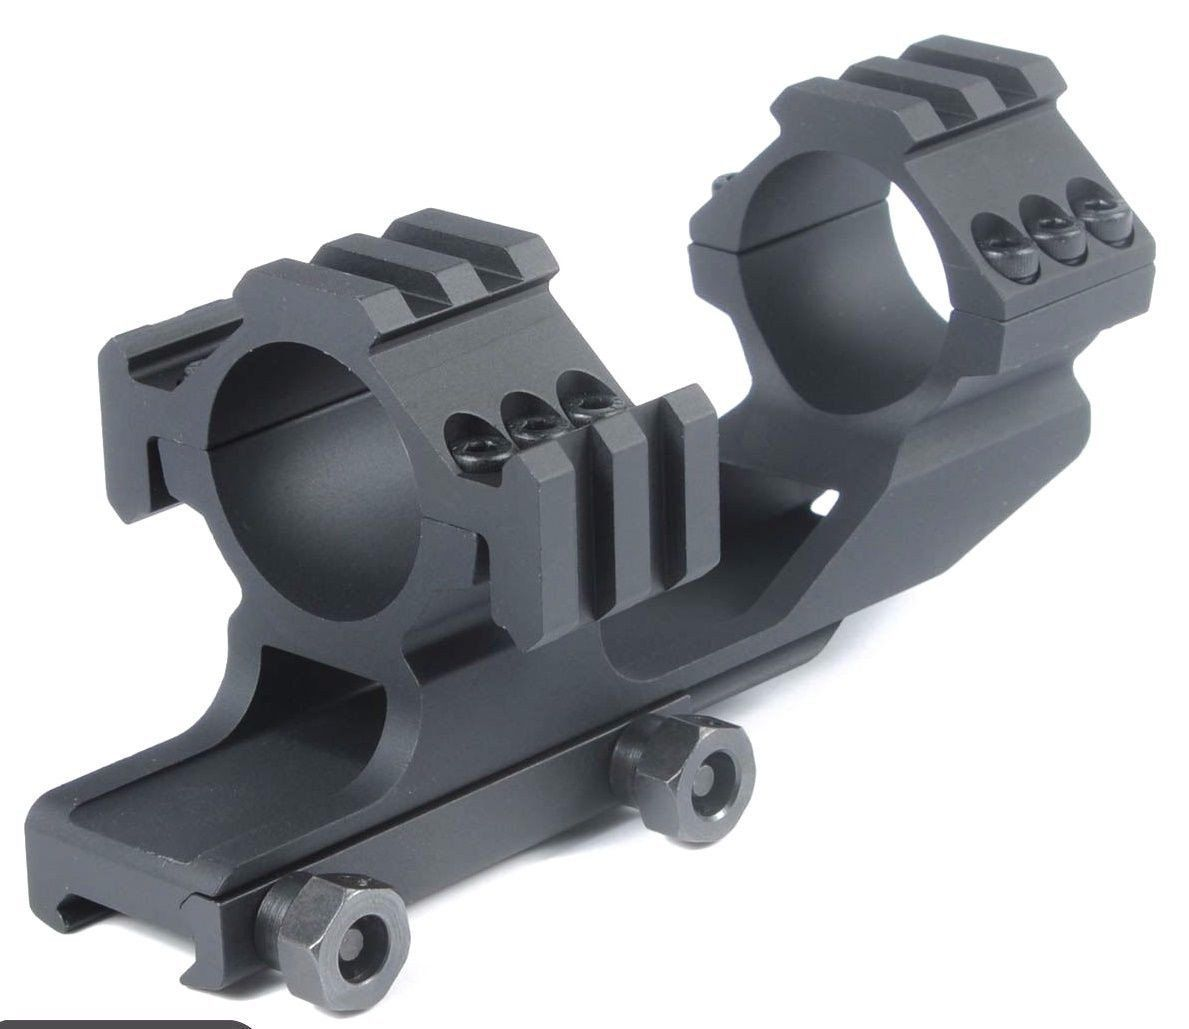 Tr-Side Rails 30mm Dual Scope Rings Cantilever Ring Scope Mount PEPR Black Scope Mounts & Accessories unbranded